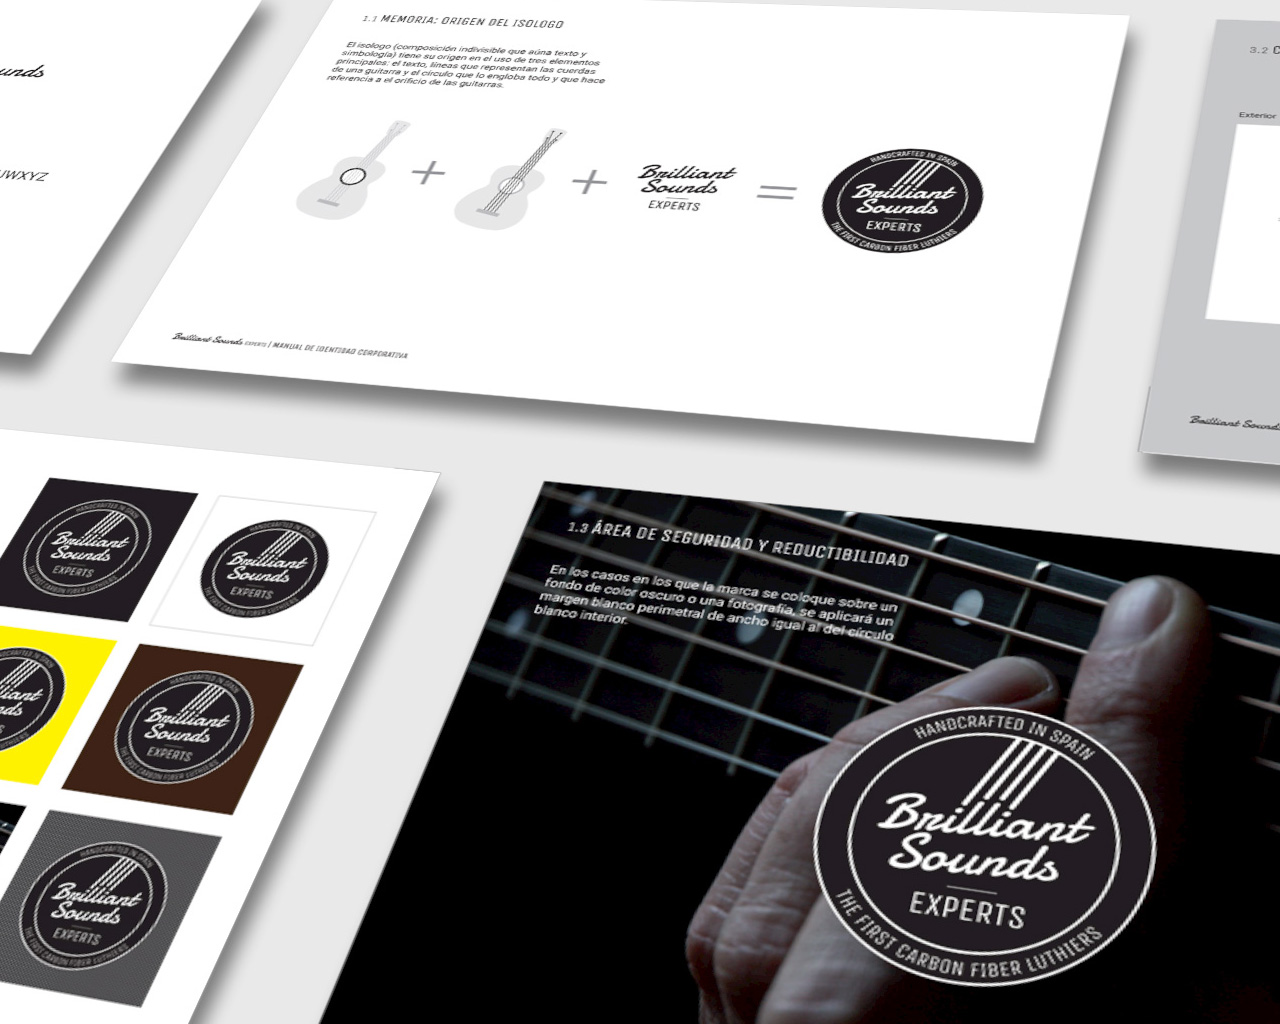 Manual de identidad corporativa de Brilliant Sounds Experts